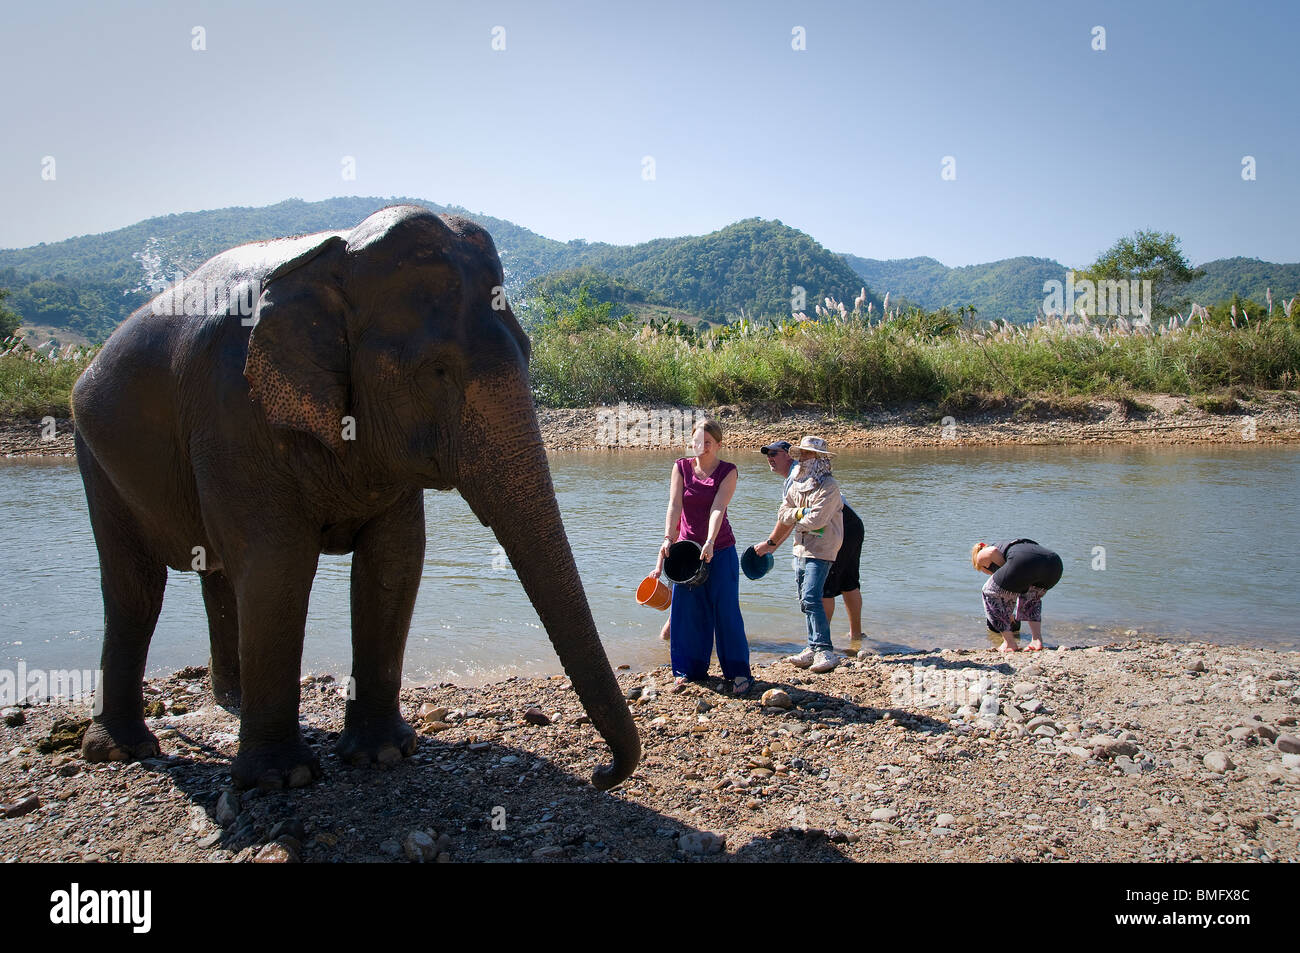 THAILAND, NORTH OF CHIANG MAI: Lek's elephant farm for rescued elephants, a place for alternative elephant tourism. - Stock Image